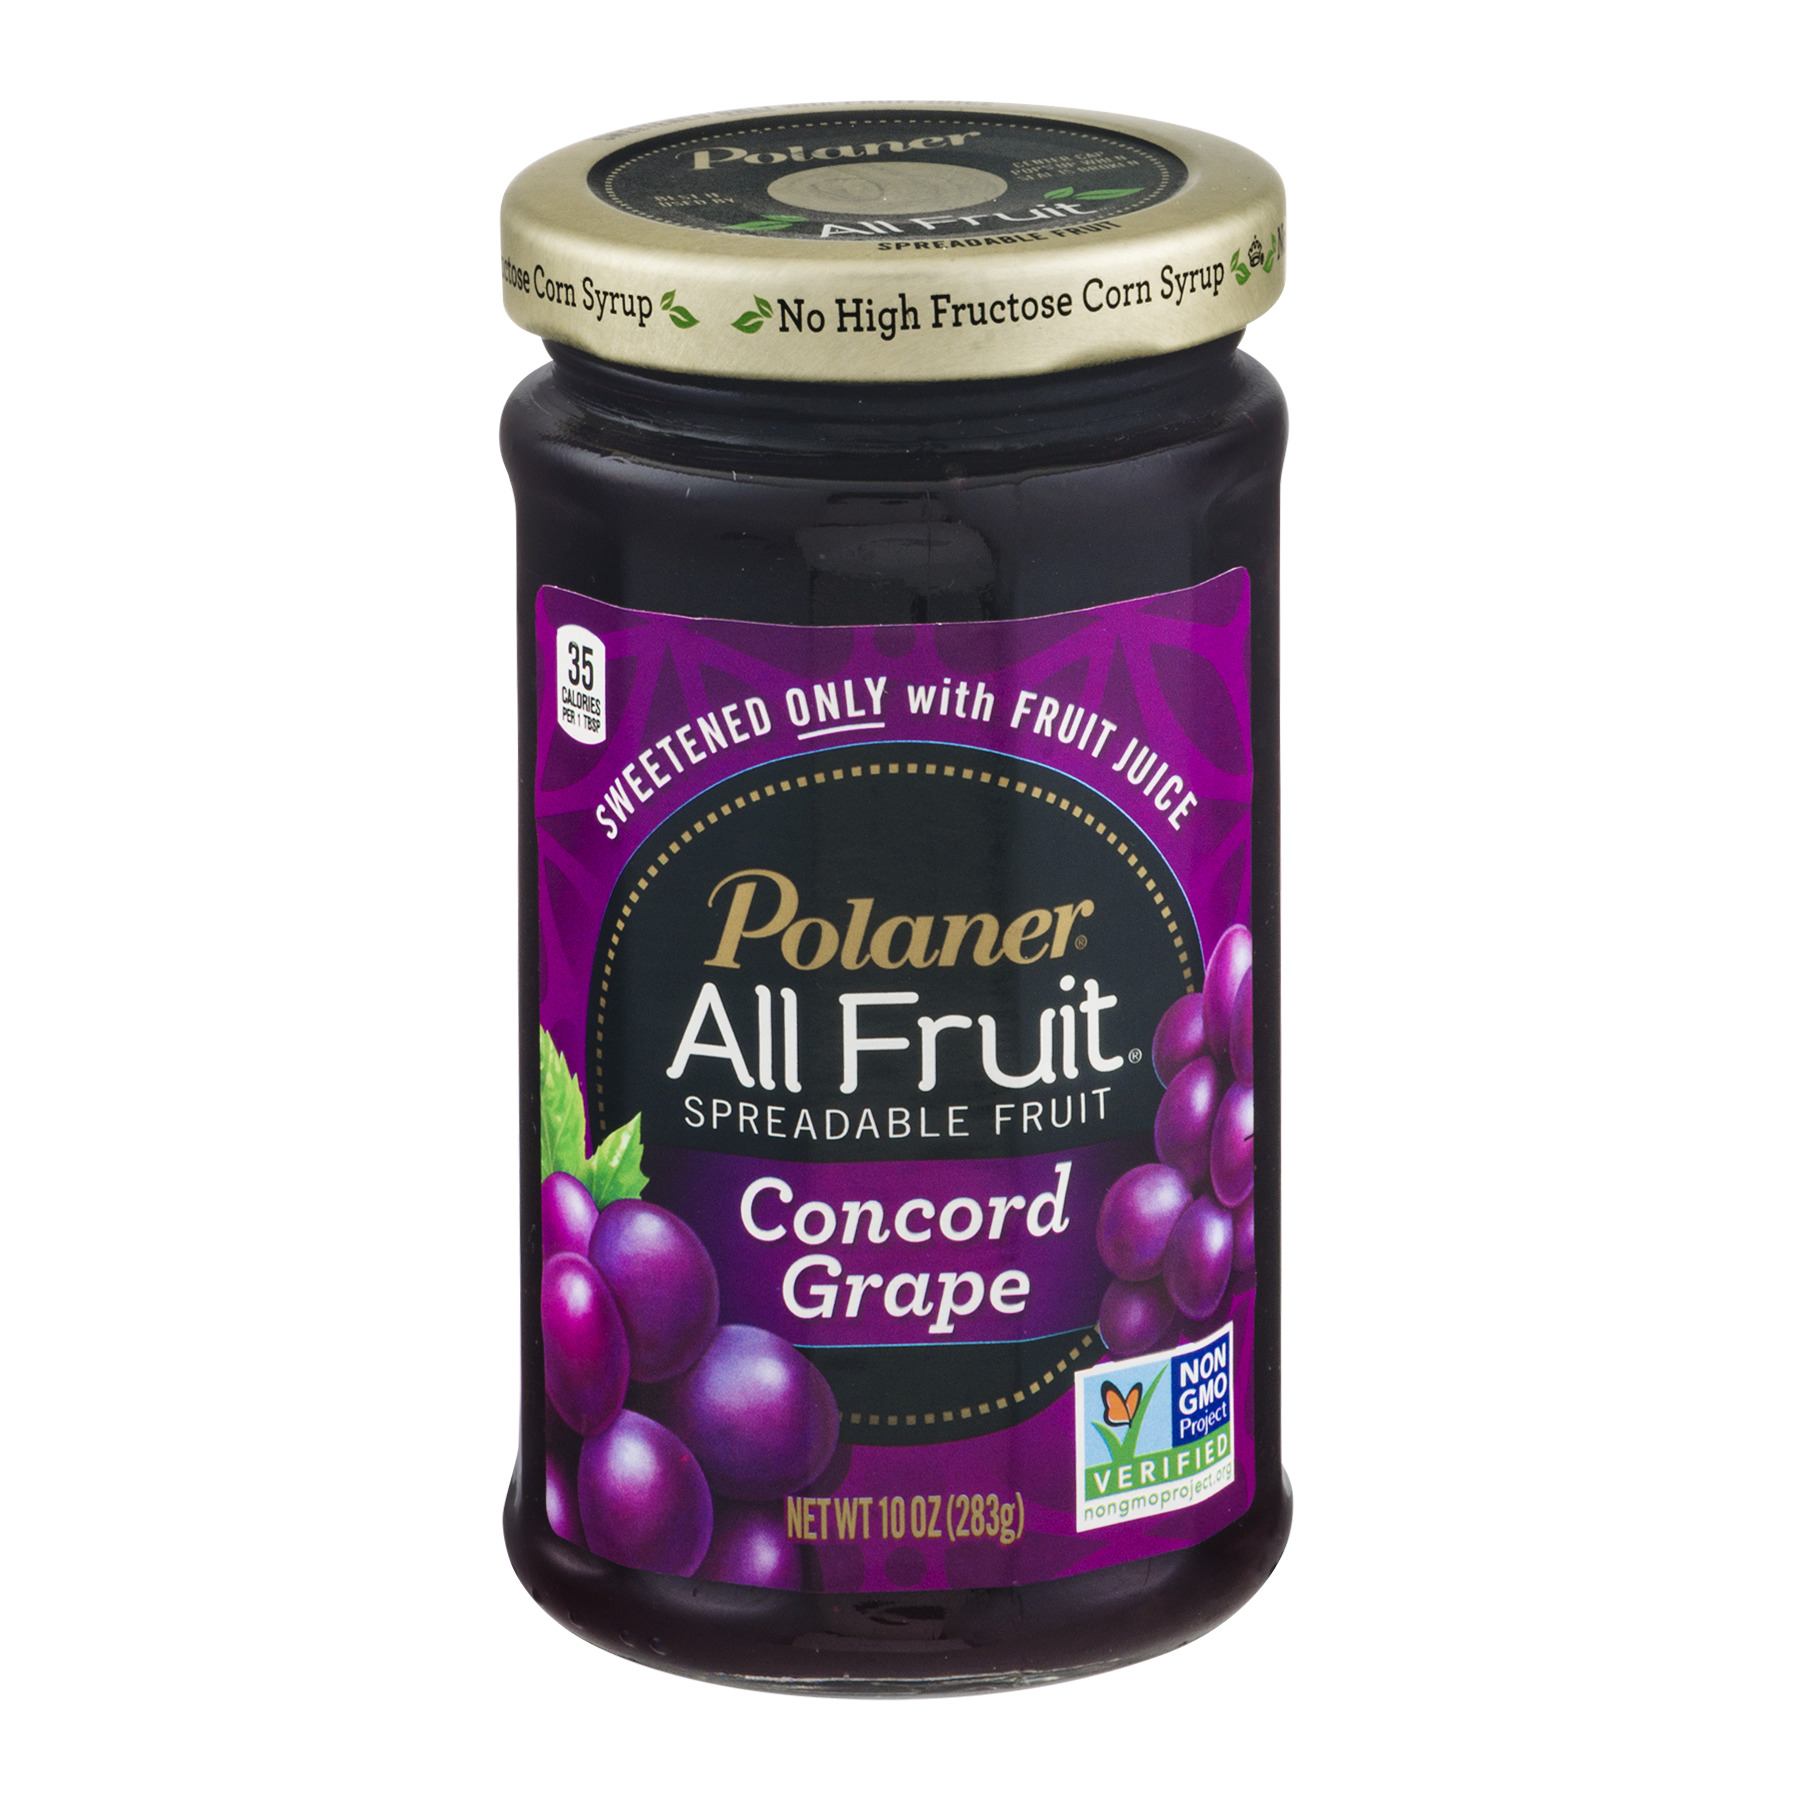 Polaner® All Fruit® Concord Grape Spreadable Fruit 10 oz. Jar